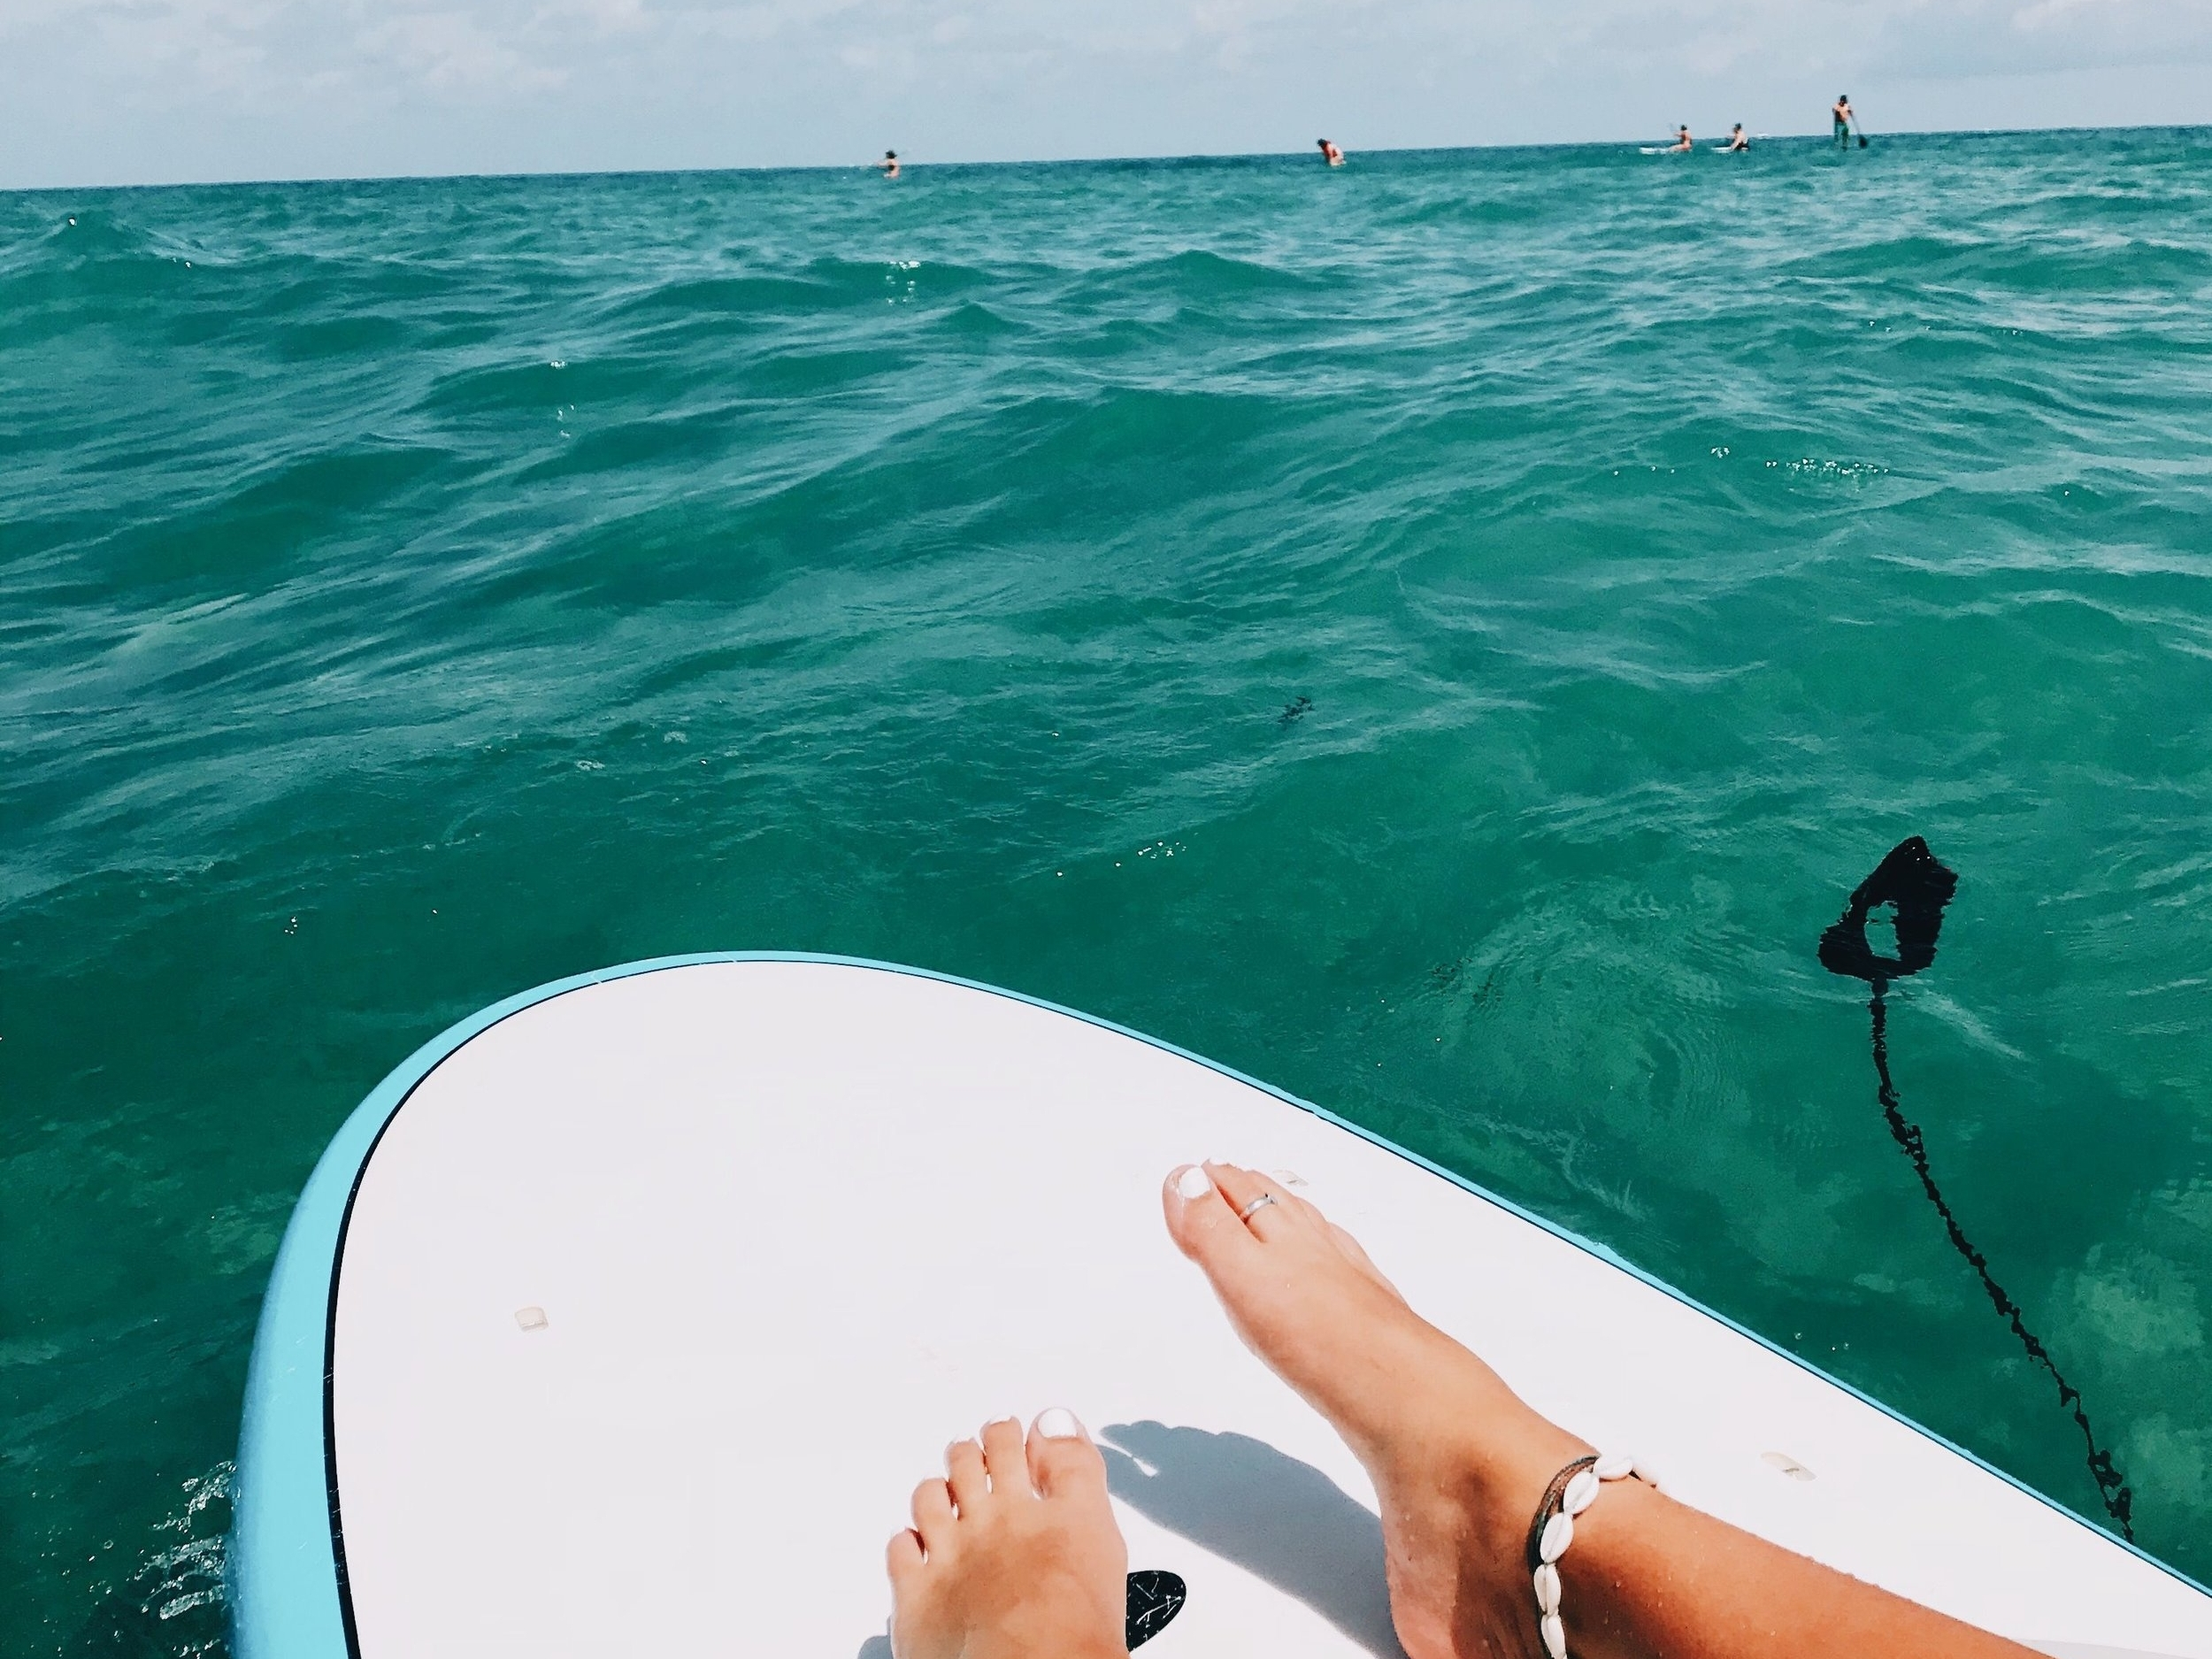 Paddle Board - Enjoy the sun and salty water while having a closer look at the beauty of the sea, while challenging your equilibrium. A paddle board should not cost more than USD $20 to rent and the experience will be too much fun.